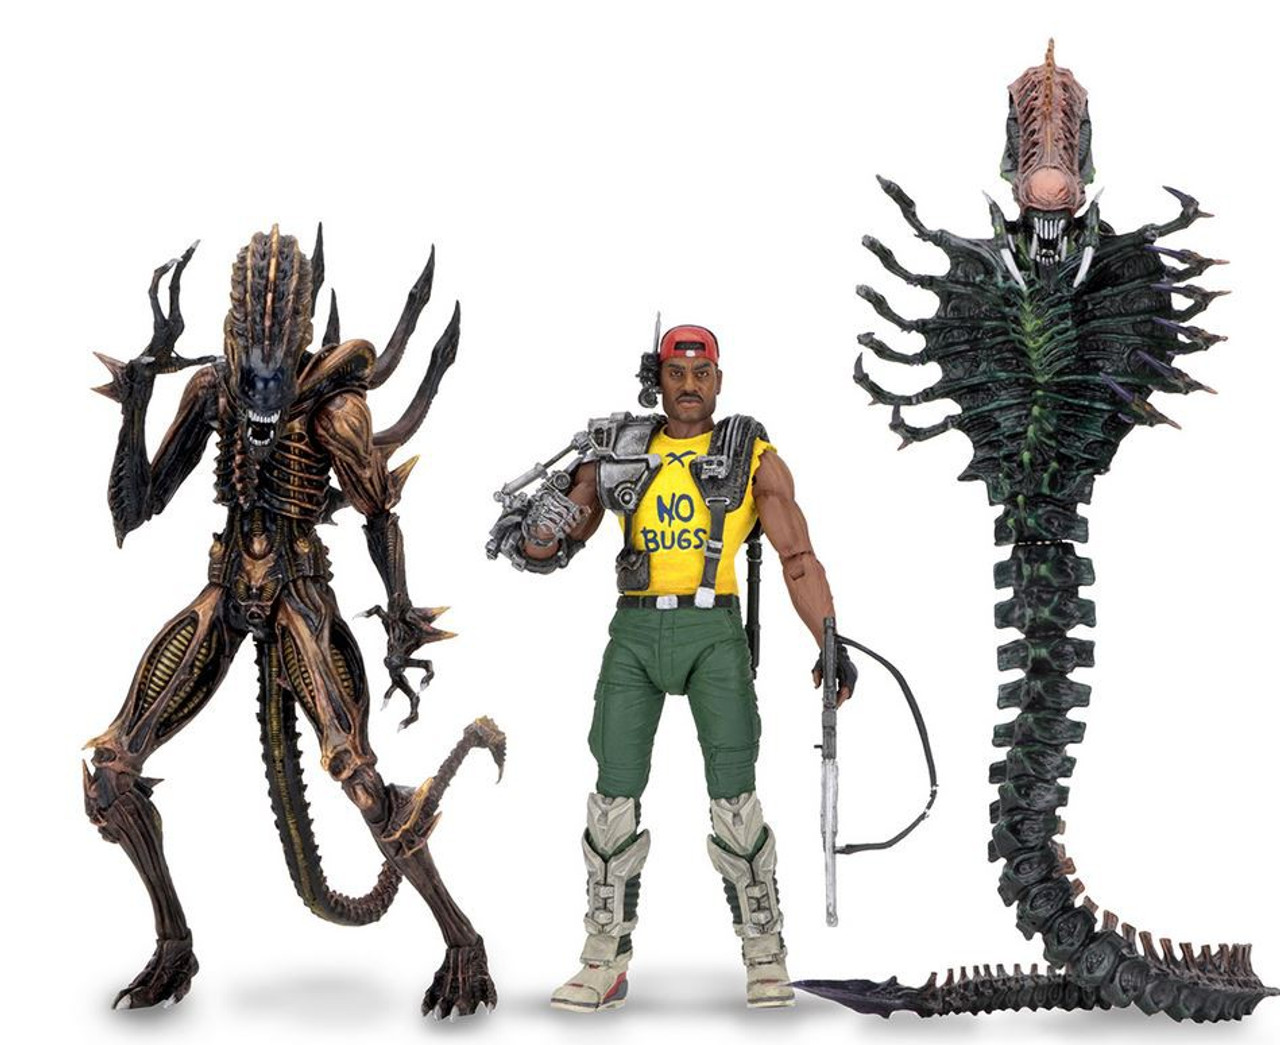 NECA Aliens Series 13 Space Marine Sgt  Apone, Snake Alien, Scorpion Alien  Set of 3 Action Figures